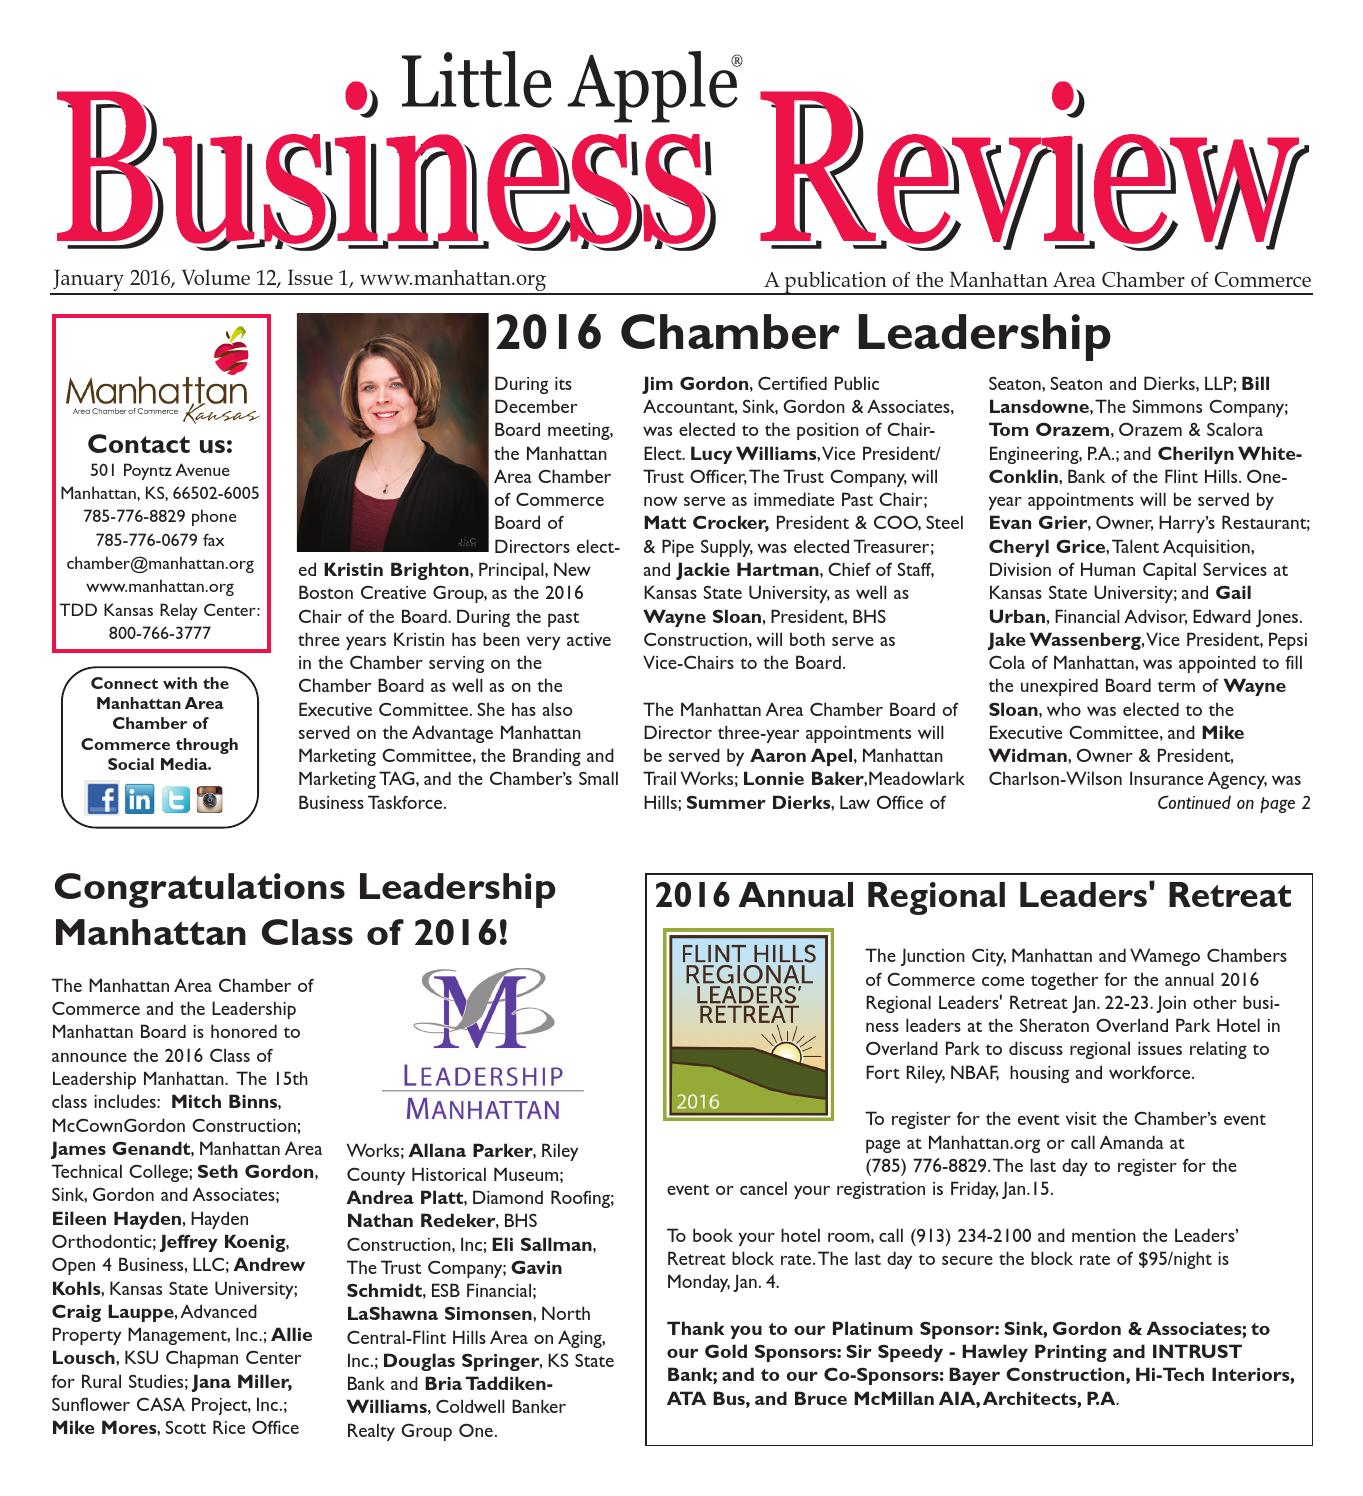 Little Apple Business Review January 2016 by Dena Huff issuu